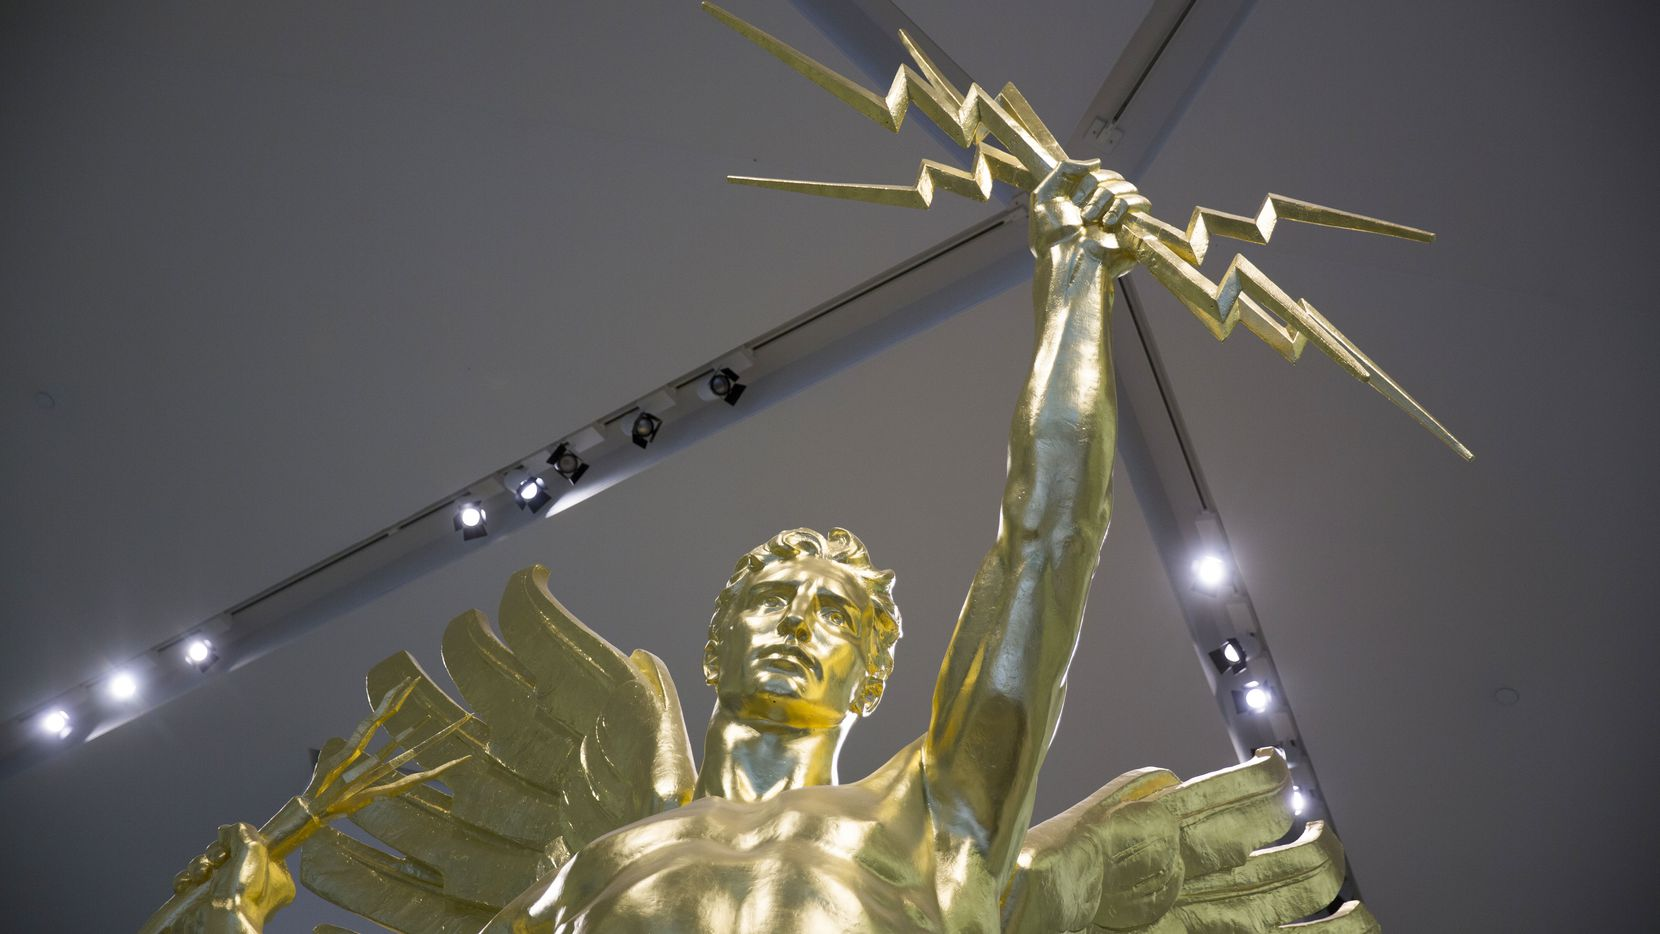 The Spirit of Communications statue was previously in the lobby of AT&T's headquarters and will reappear after the downtown campus redo is done.